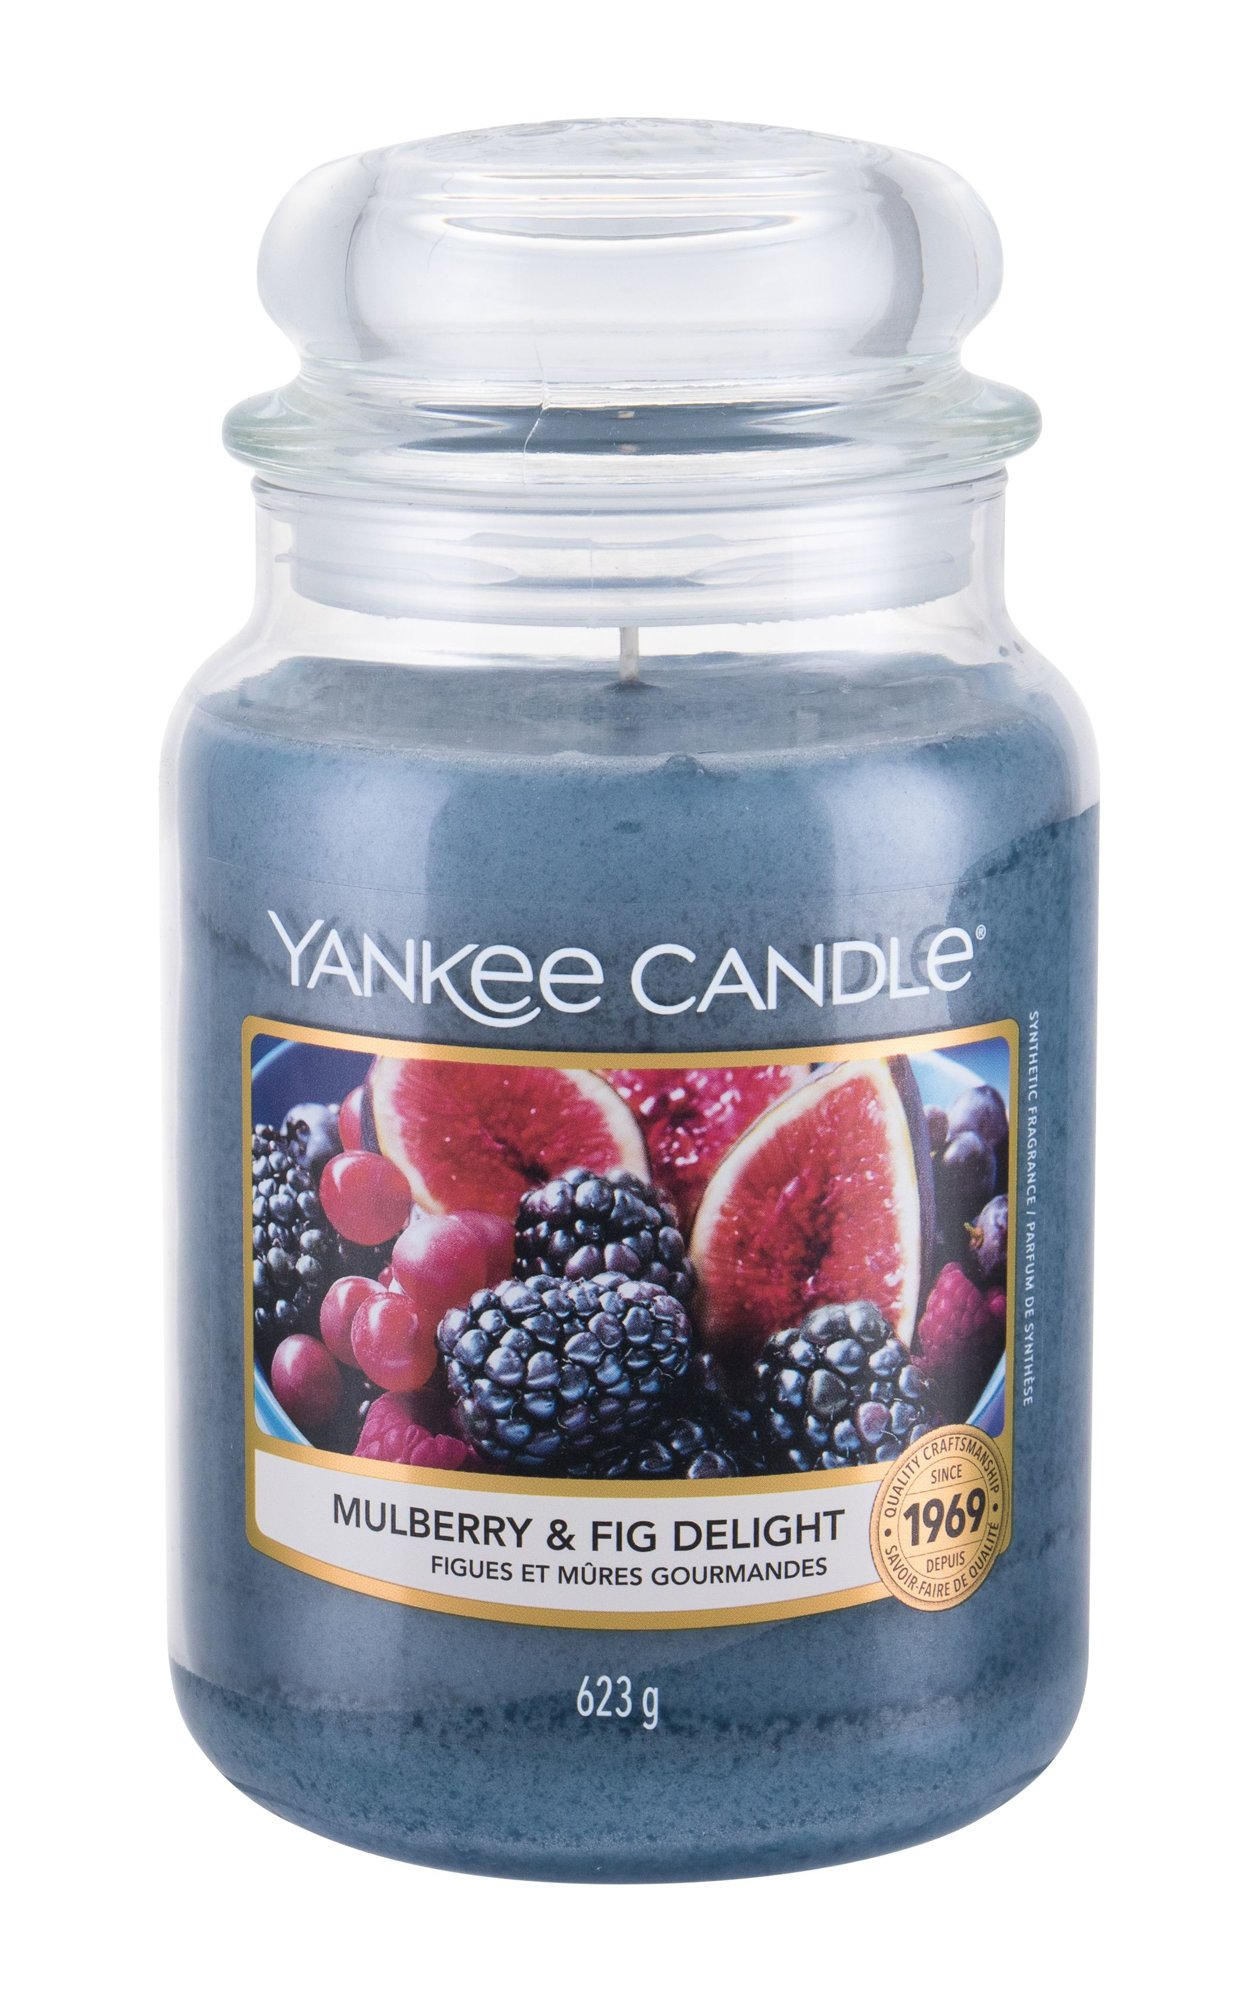 Yankee Candle Mulberry & Fig Delight, Vonná Gyertya 623g